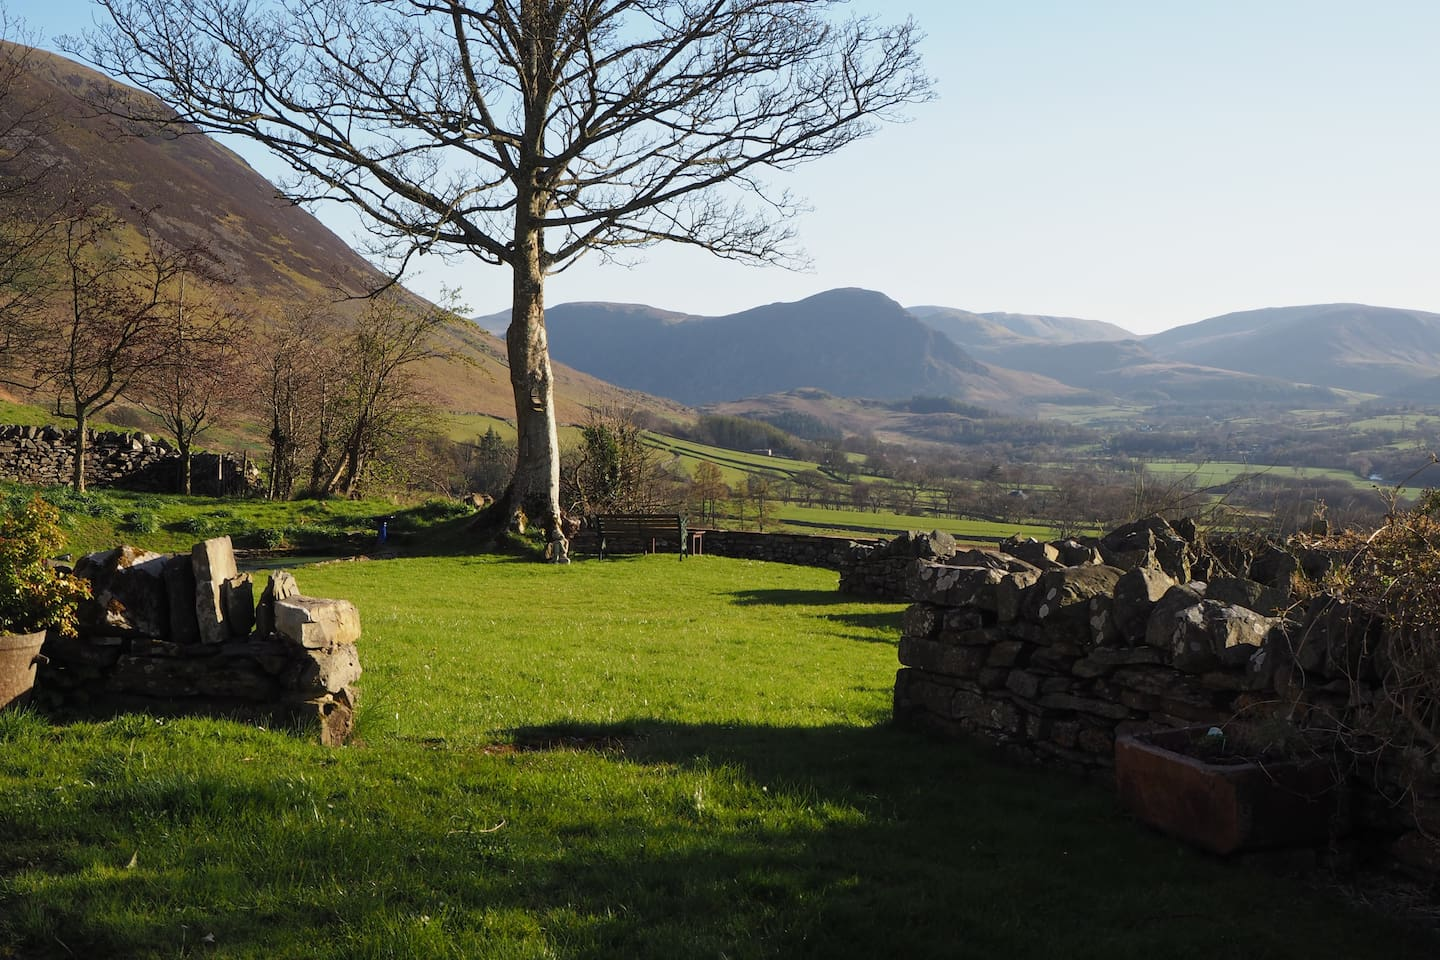 Part of the panoramic view from the High Swinside garden looking down the Lorton valley towards Melbreak and Crummock Water.